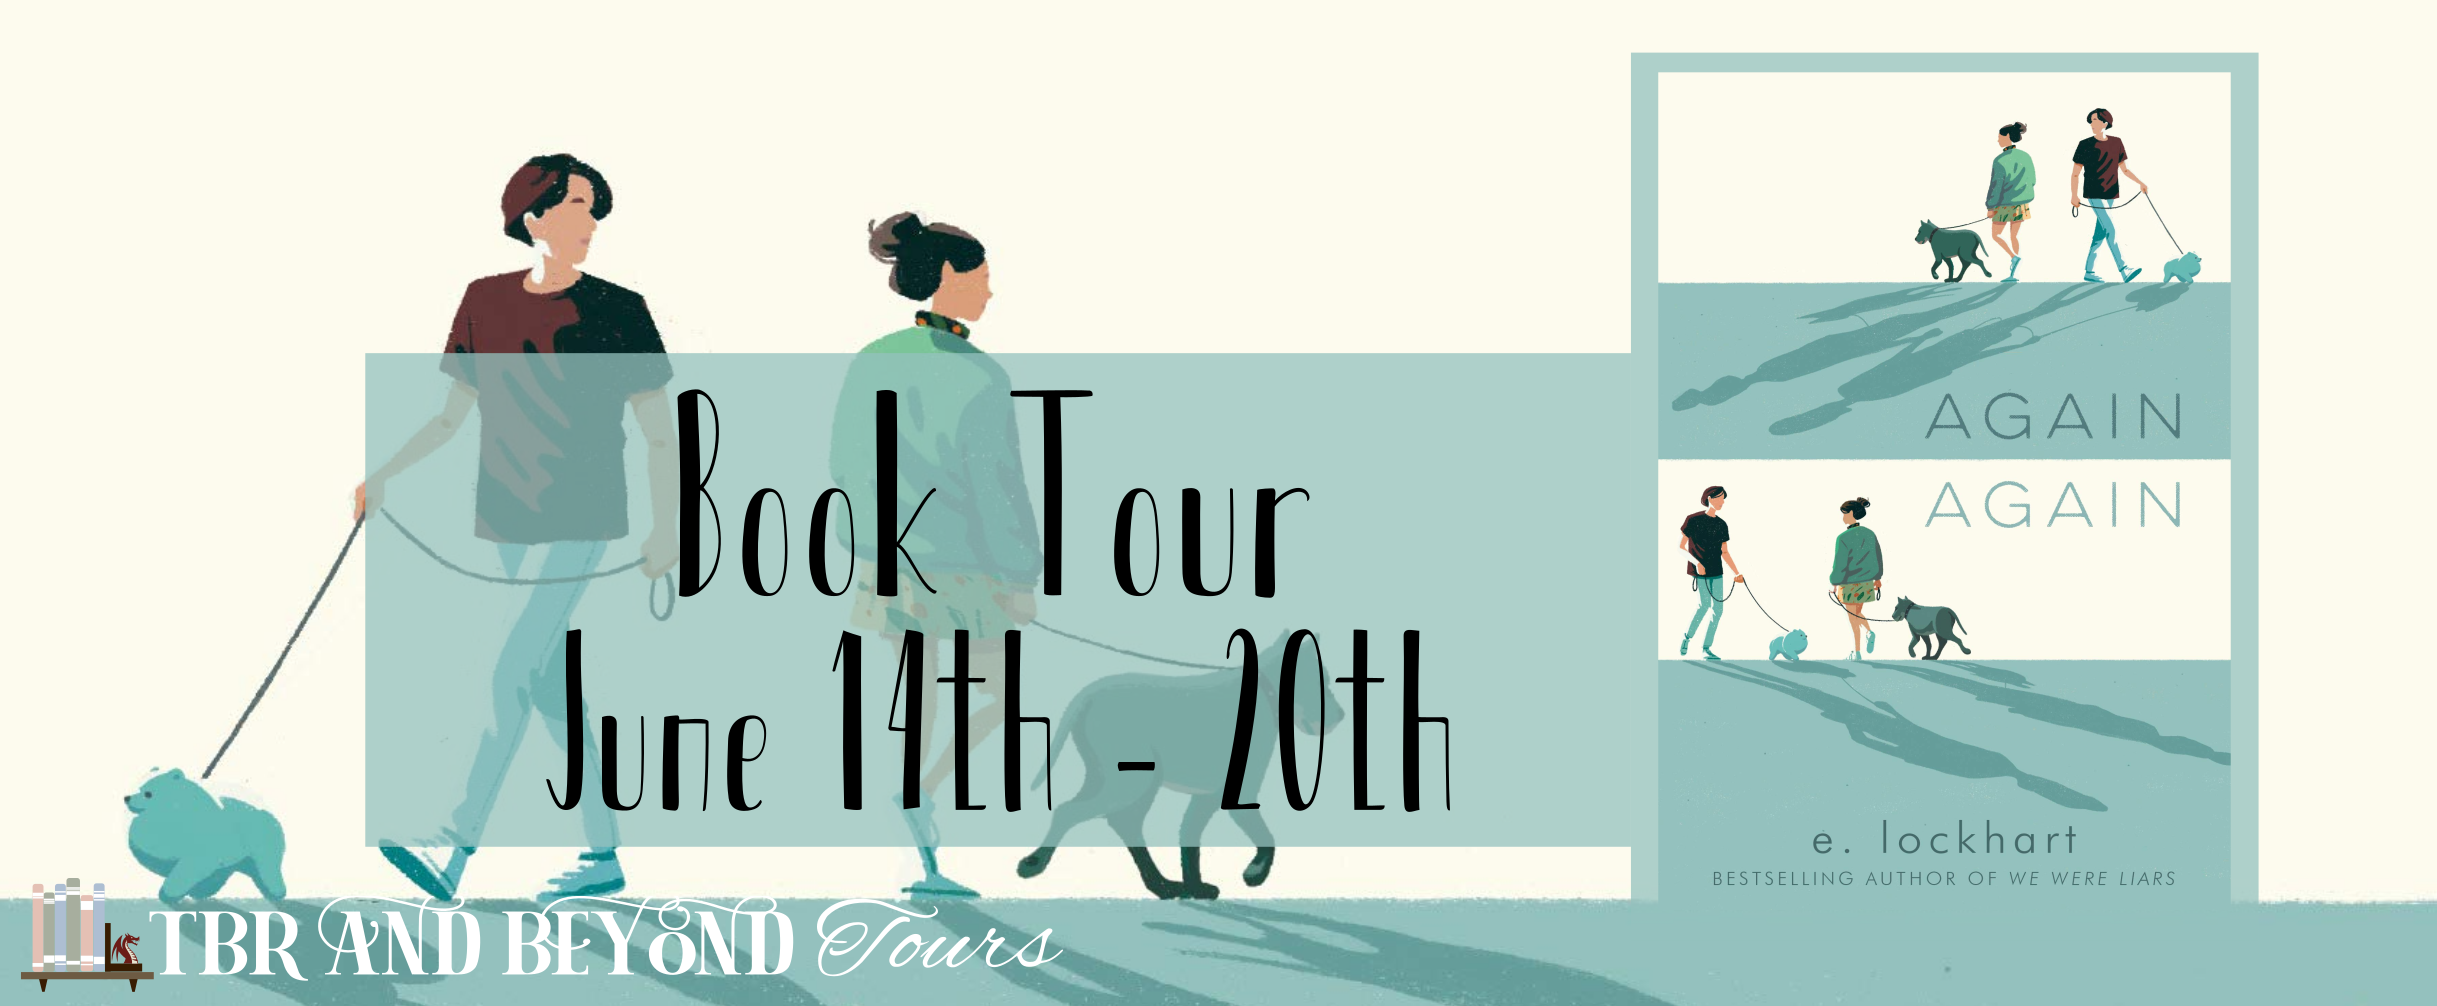 Blog Tour: Again, Again by E. Lockhart (Reading Journal + Giveaway!)